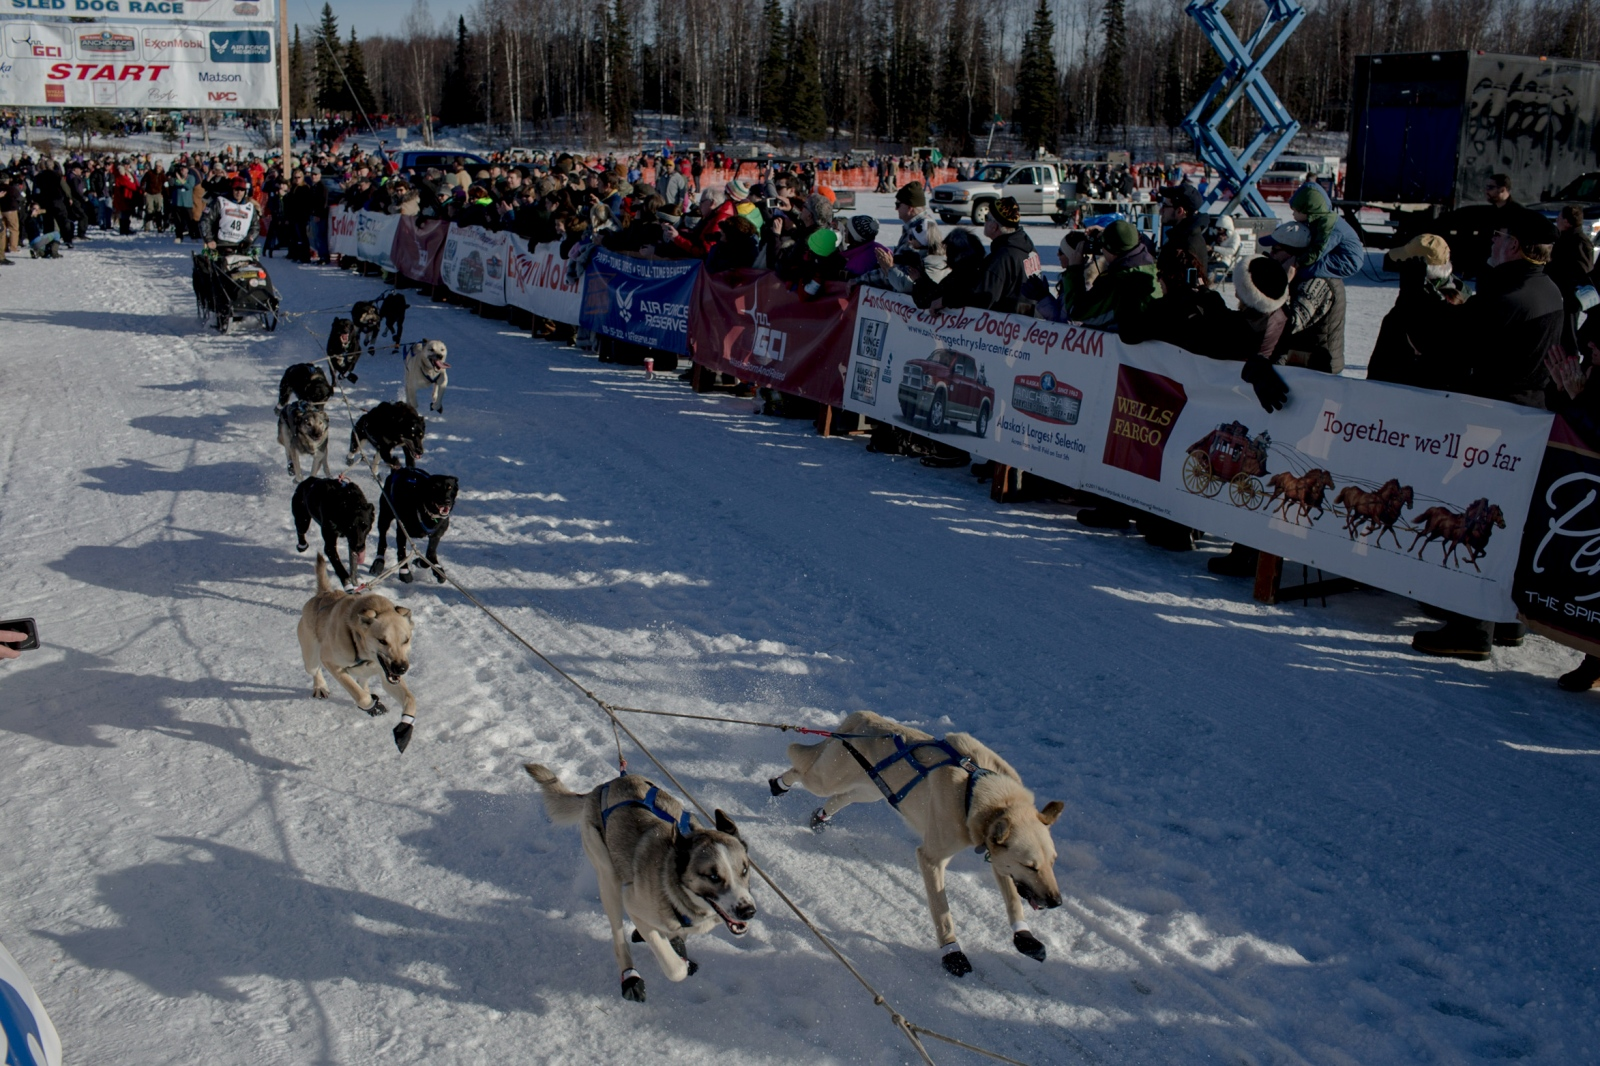 Martin Buser mushes out on the trail in Willow at the 2016 Iditarod restart on March 6, 2016.